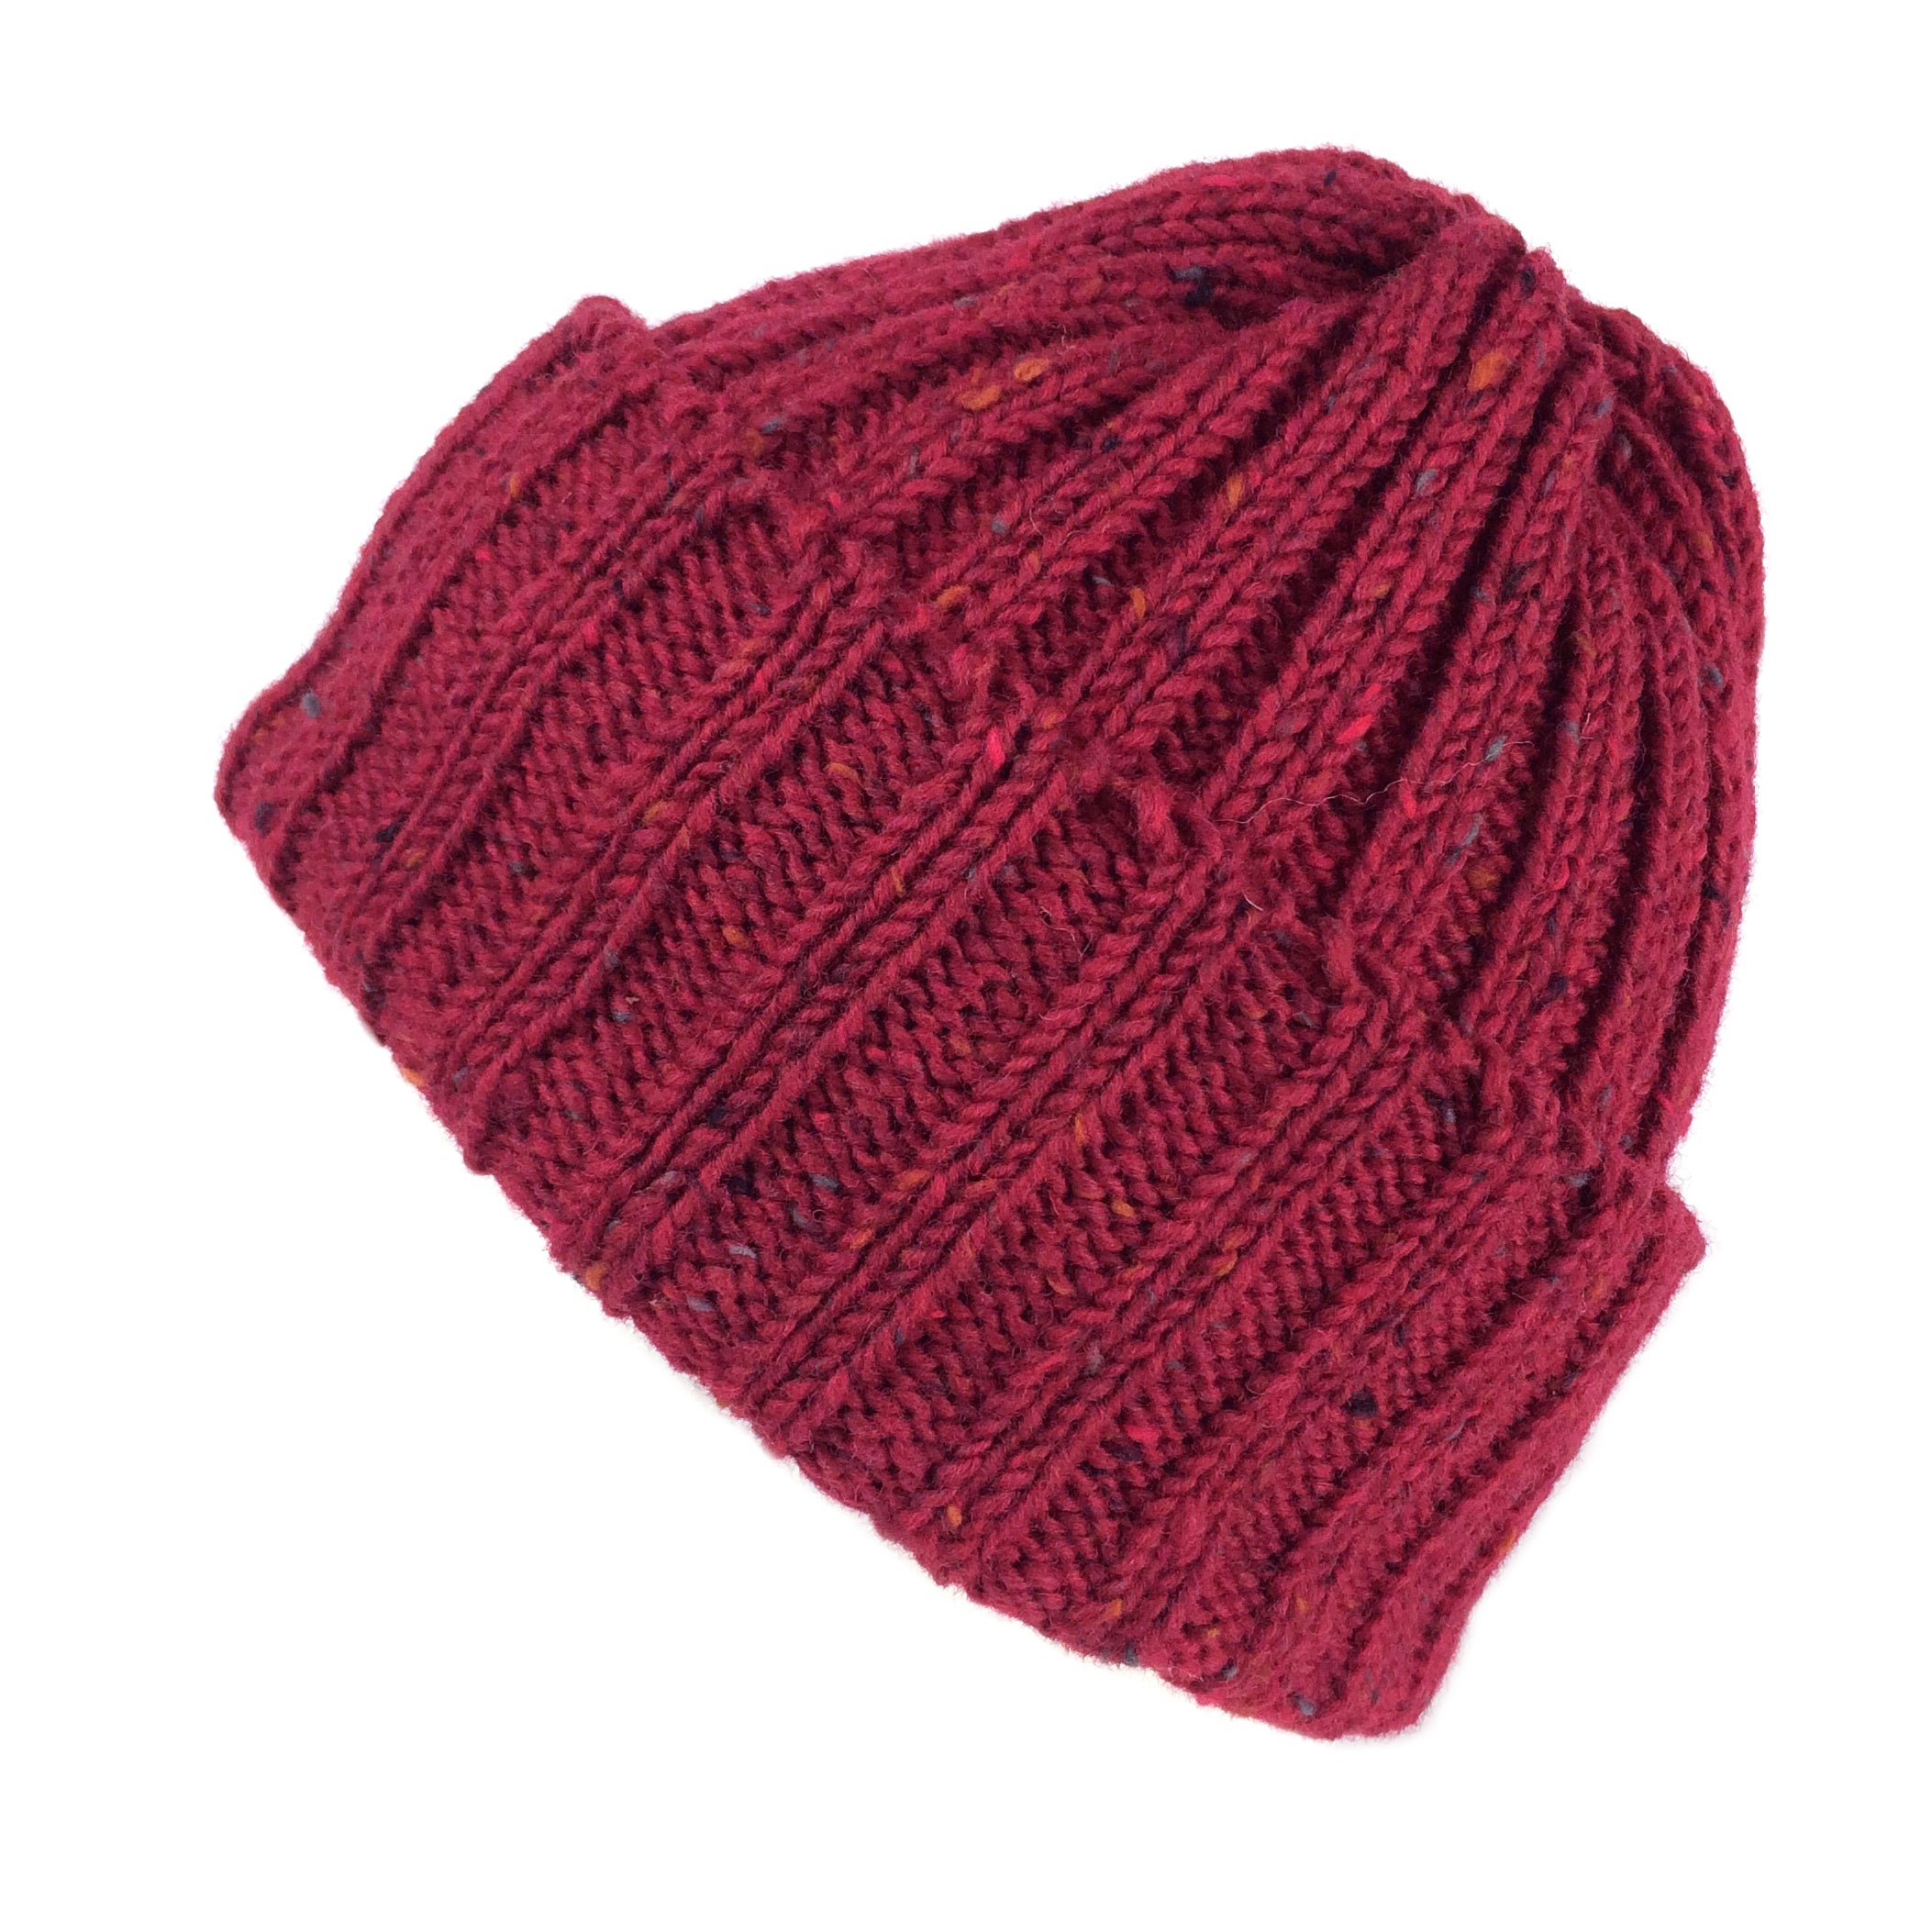 db5ab722bcfc8 Wool Beanie Fisherman s Hat Gift for Him or Her Highland 2000 Chunky Knit  Red Burgundy Unisex ...